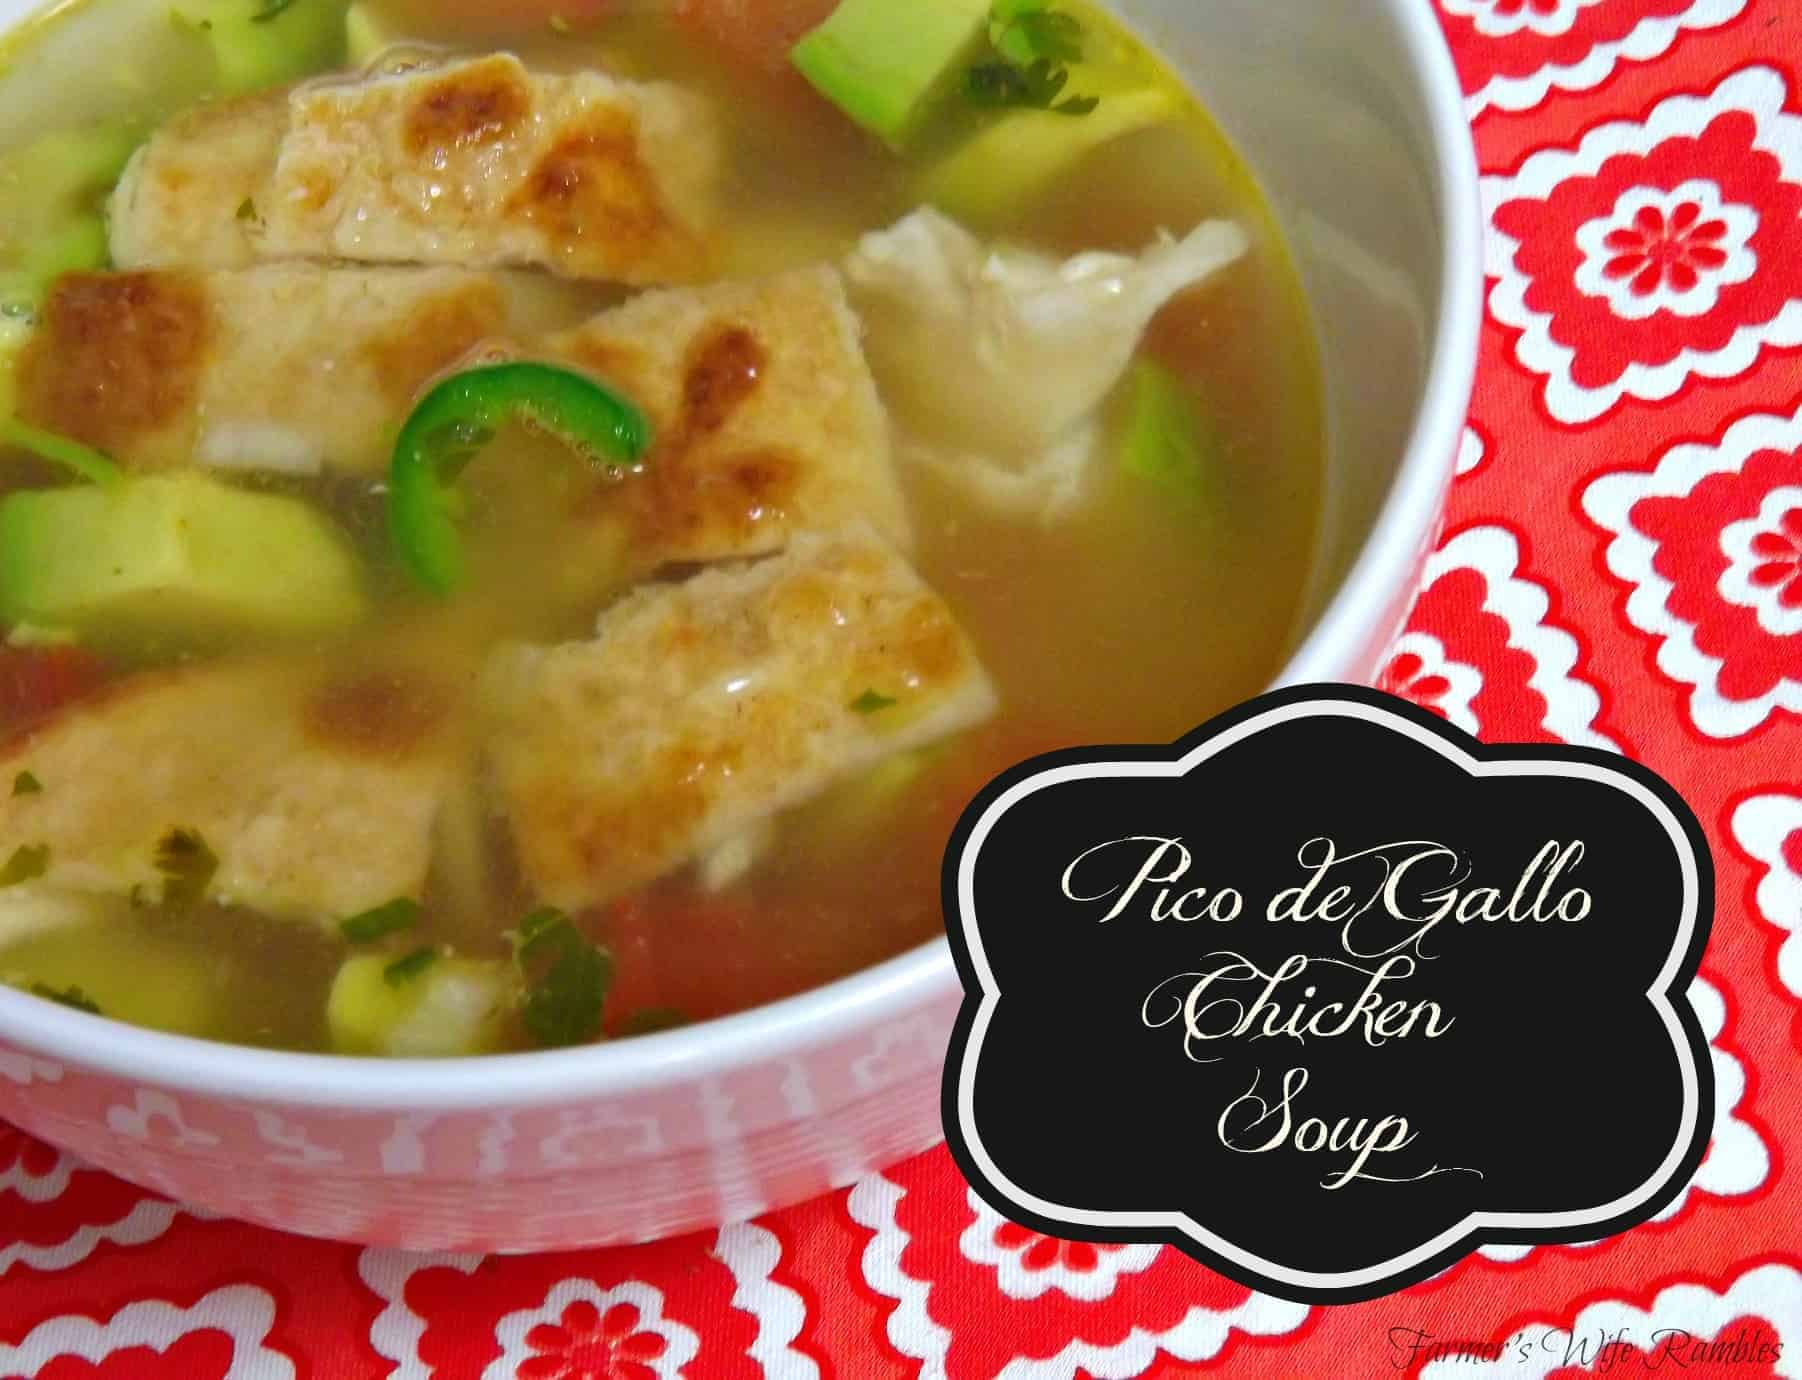 Pico De Gallo Chicken Soup